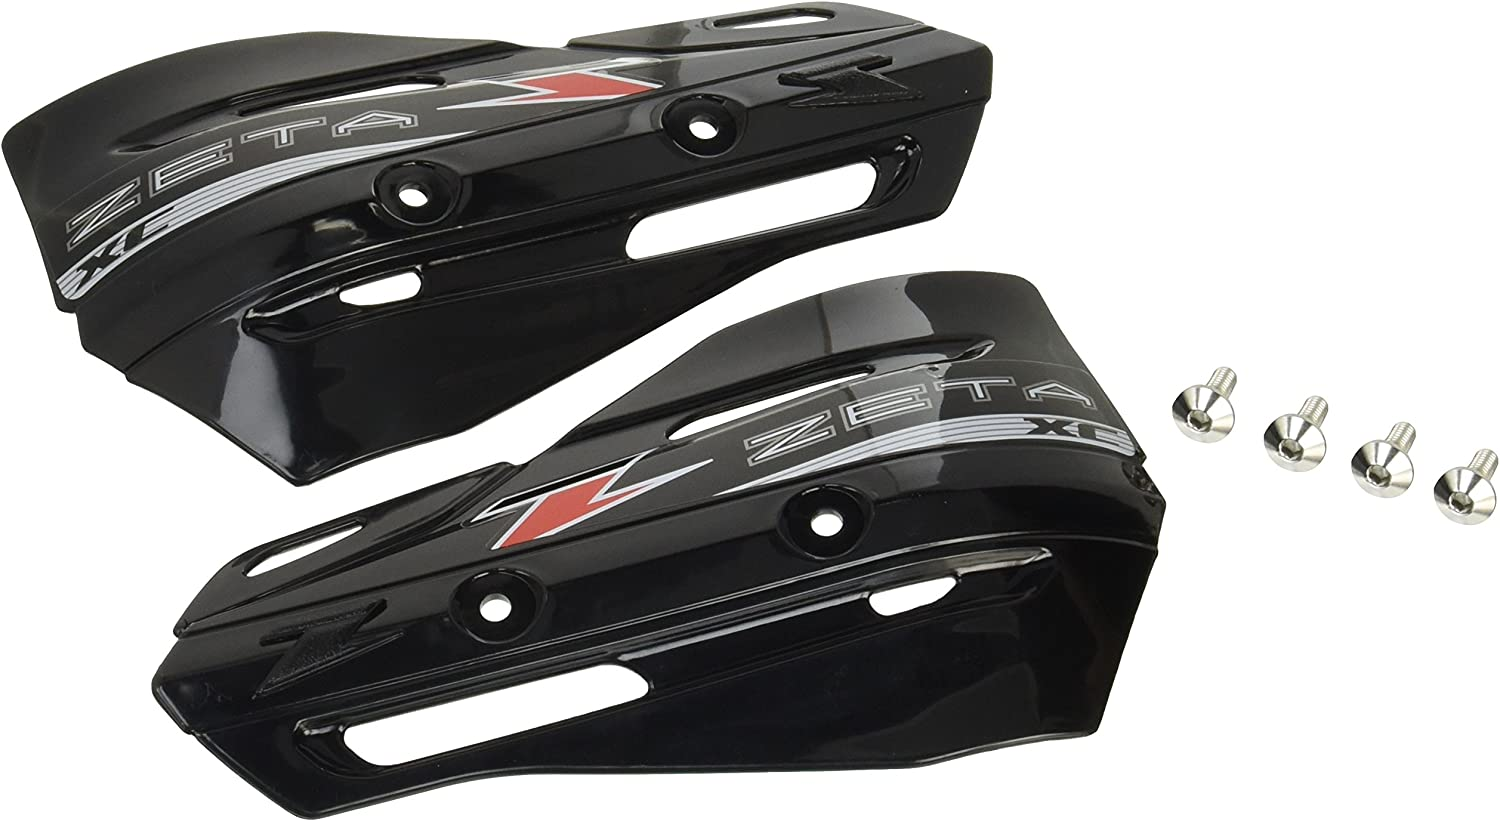 Selling and selling Zeta San Jose Mall XC Protector BLACK Hand Armor Handguards for Pair Shields